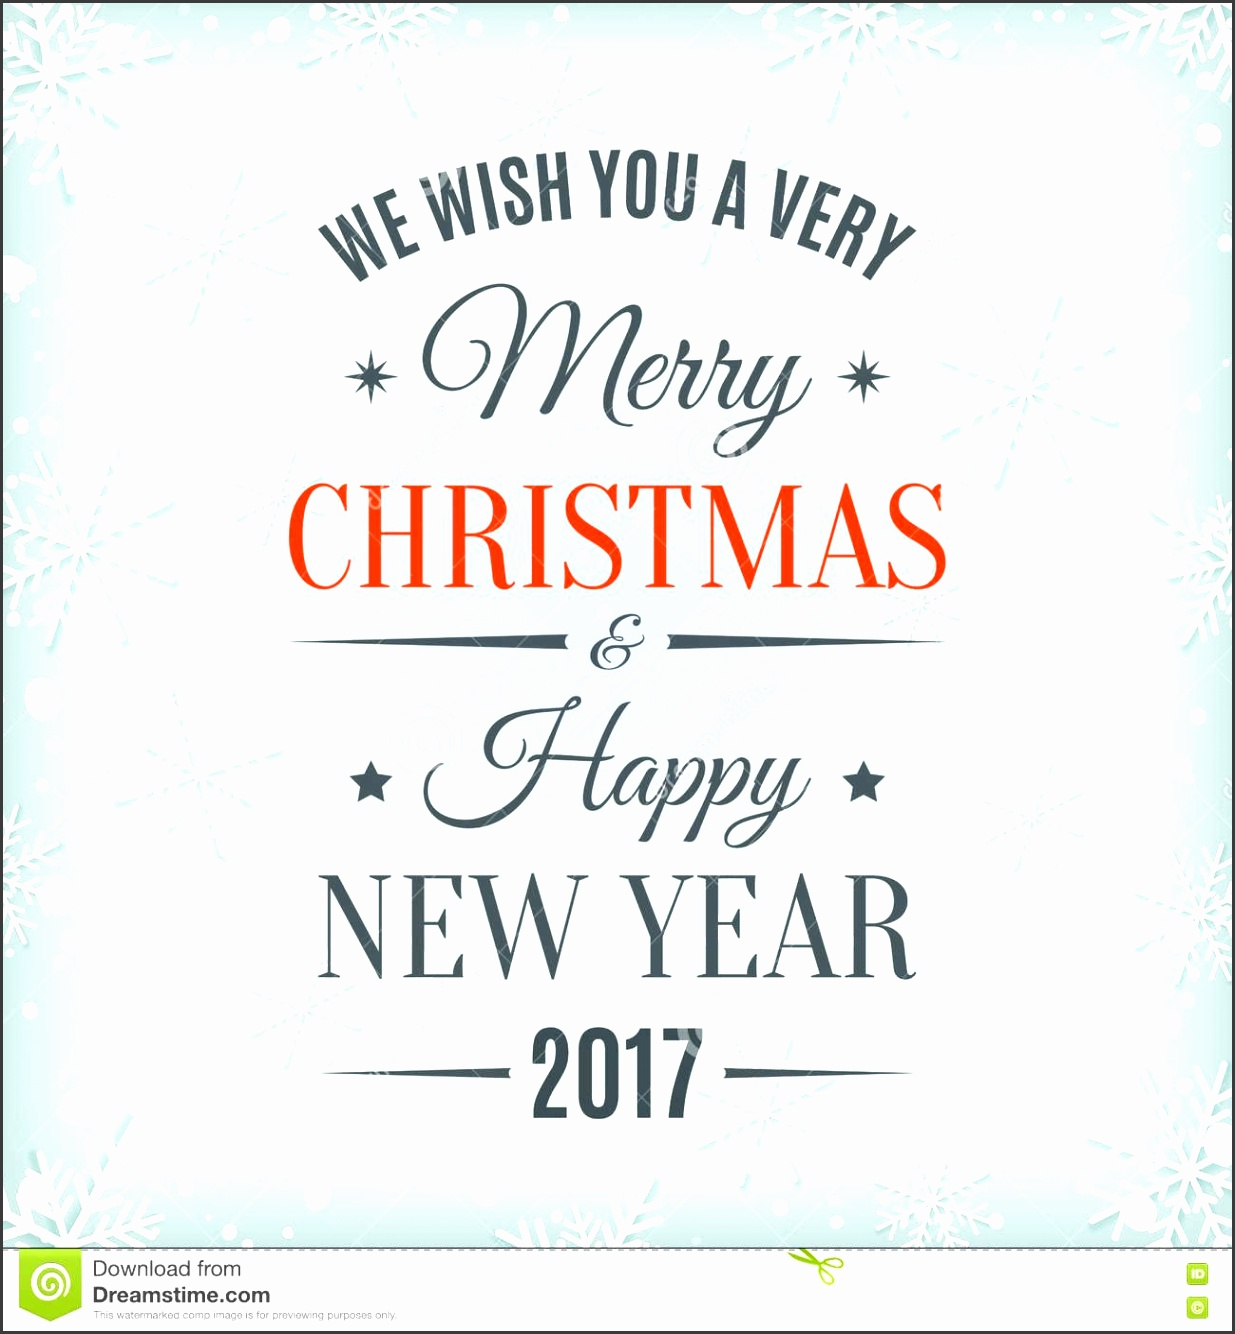 Merry Christmas And Happy New Year 2017 Stock Vector Image within Christmas Greeting Card